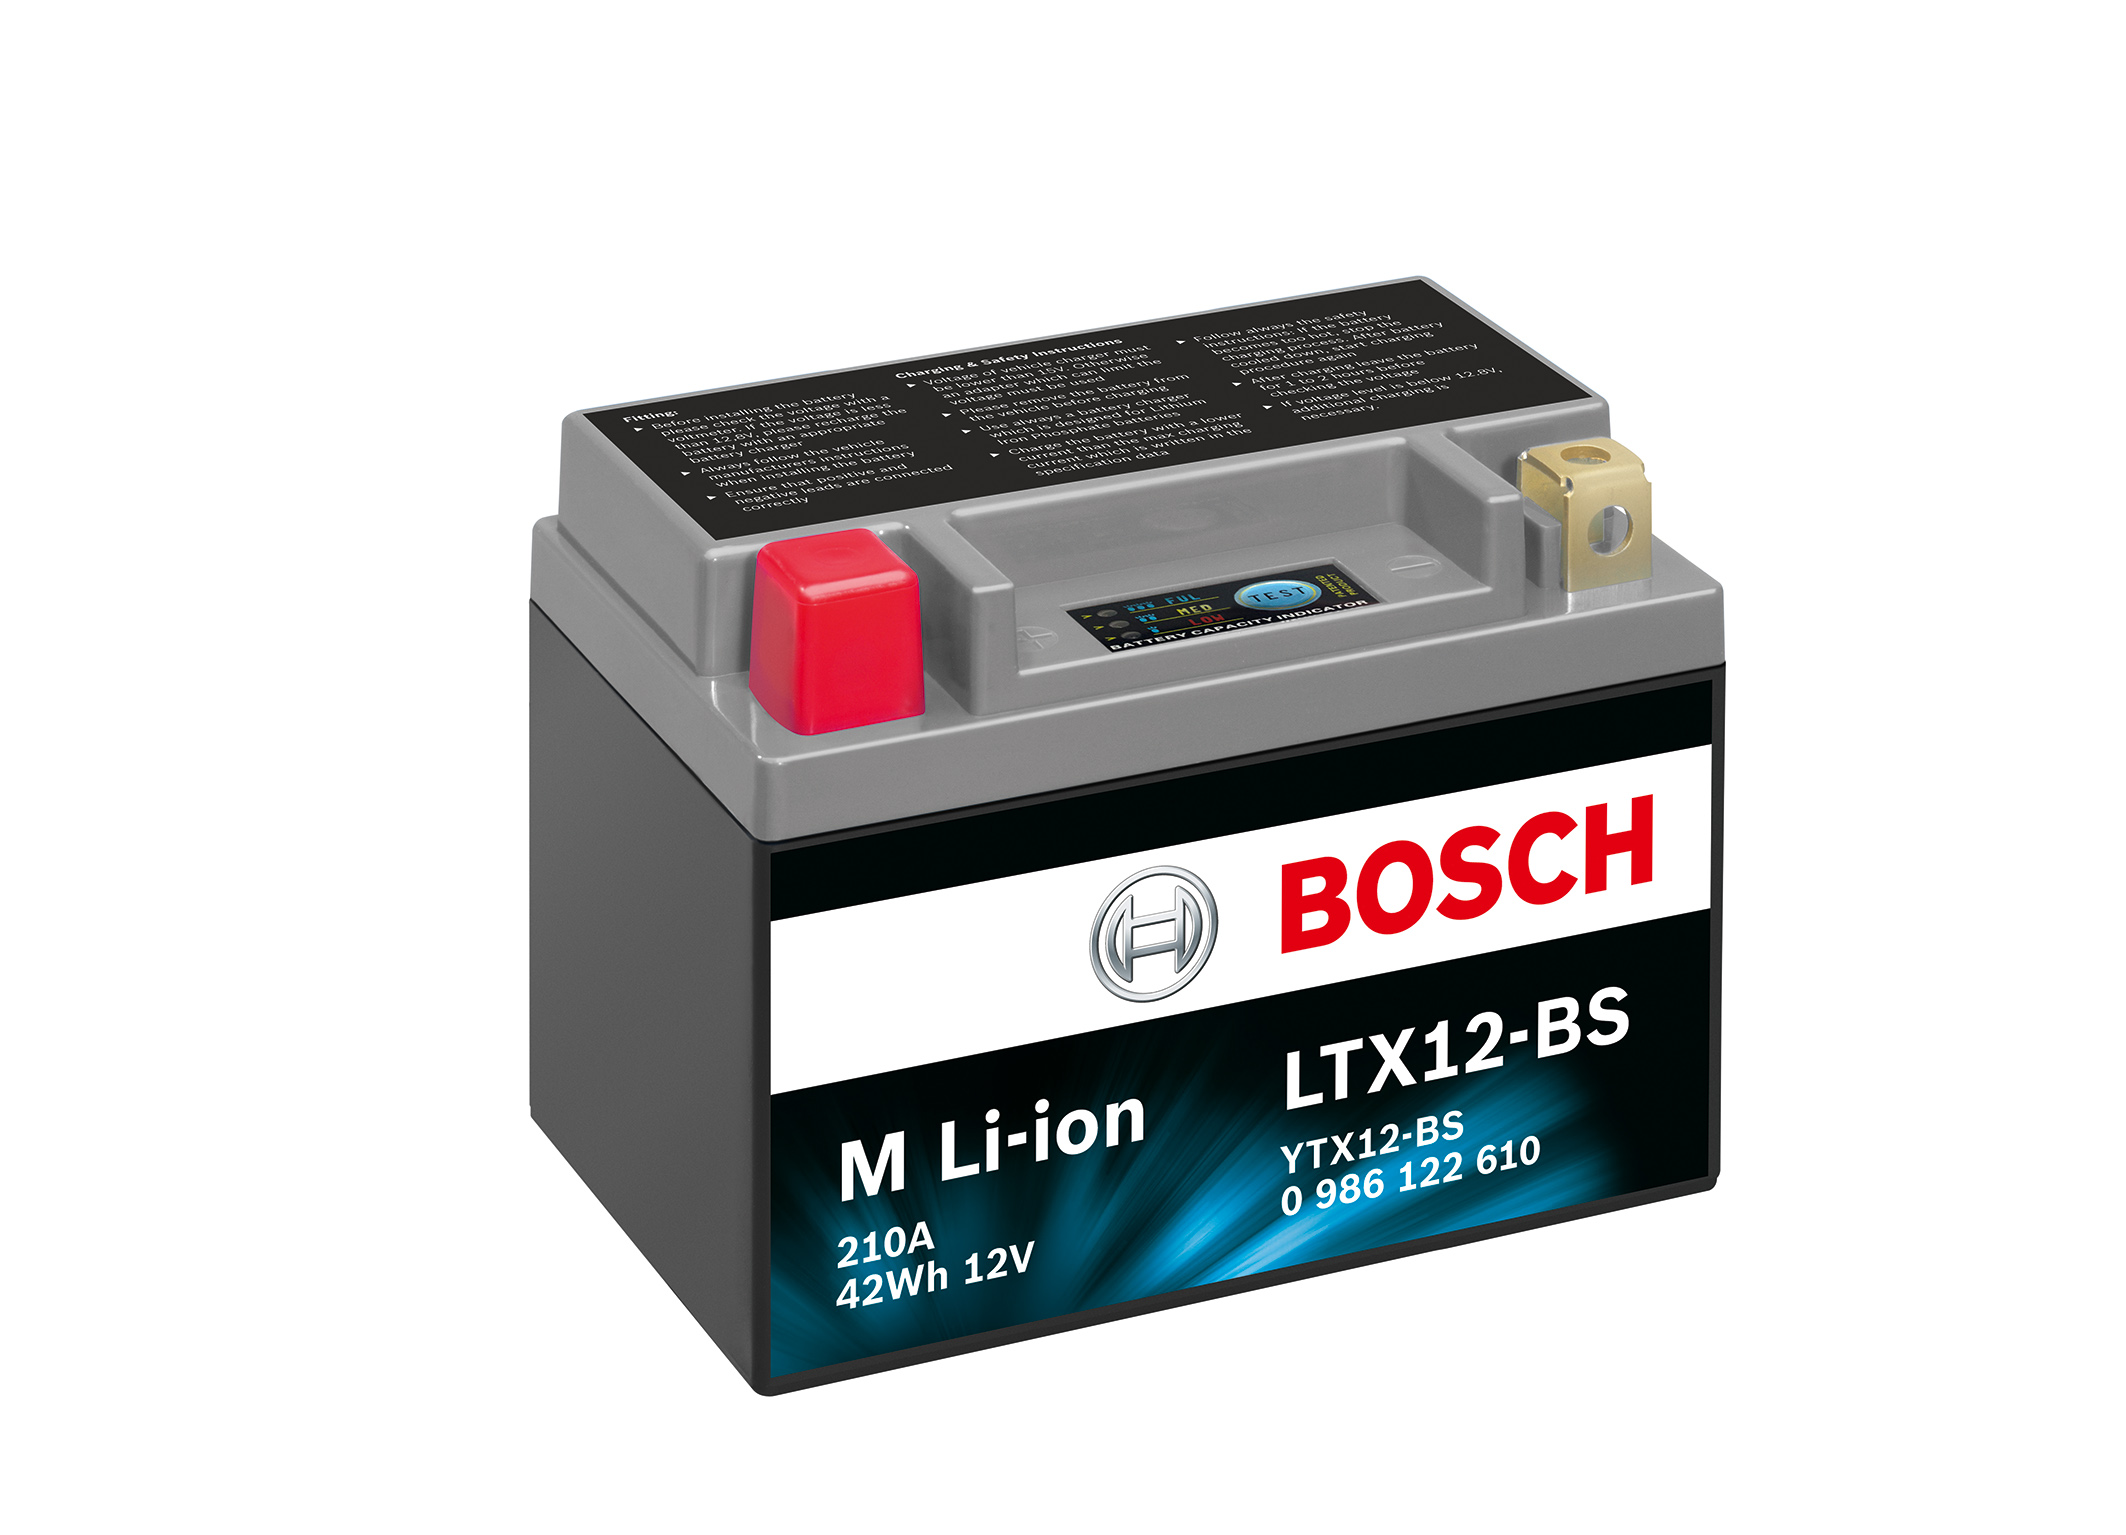 new bosch two wheeler battery with innovative lithium ion technology bosch media service. Black Bedroom Furniture Sets. Home Design Ideas